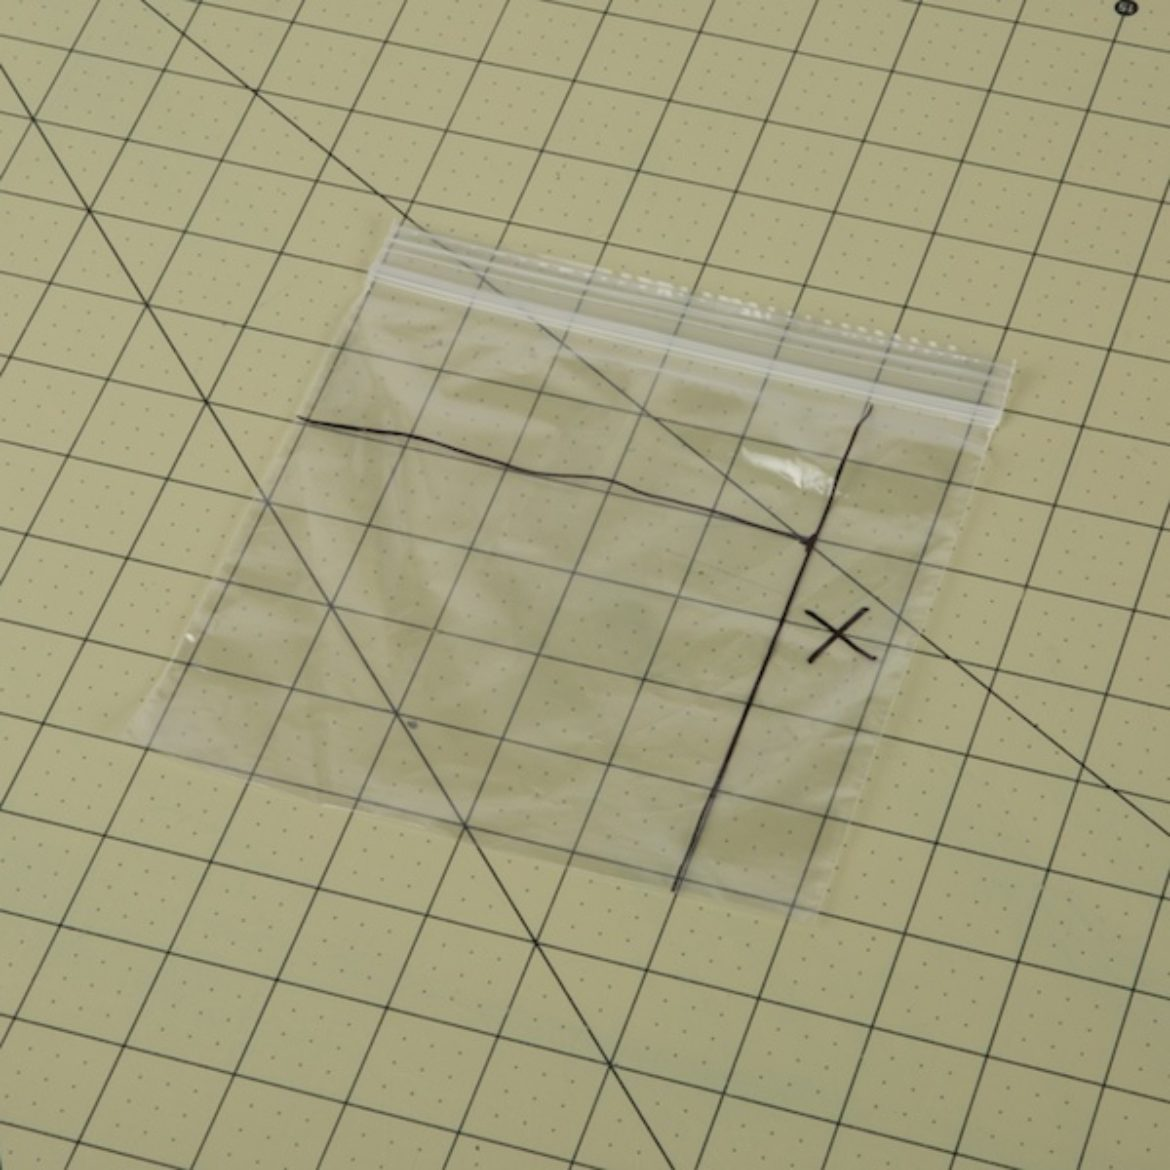 sandwich bag with three sections drawn on it